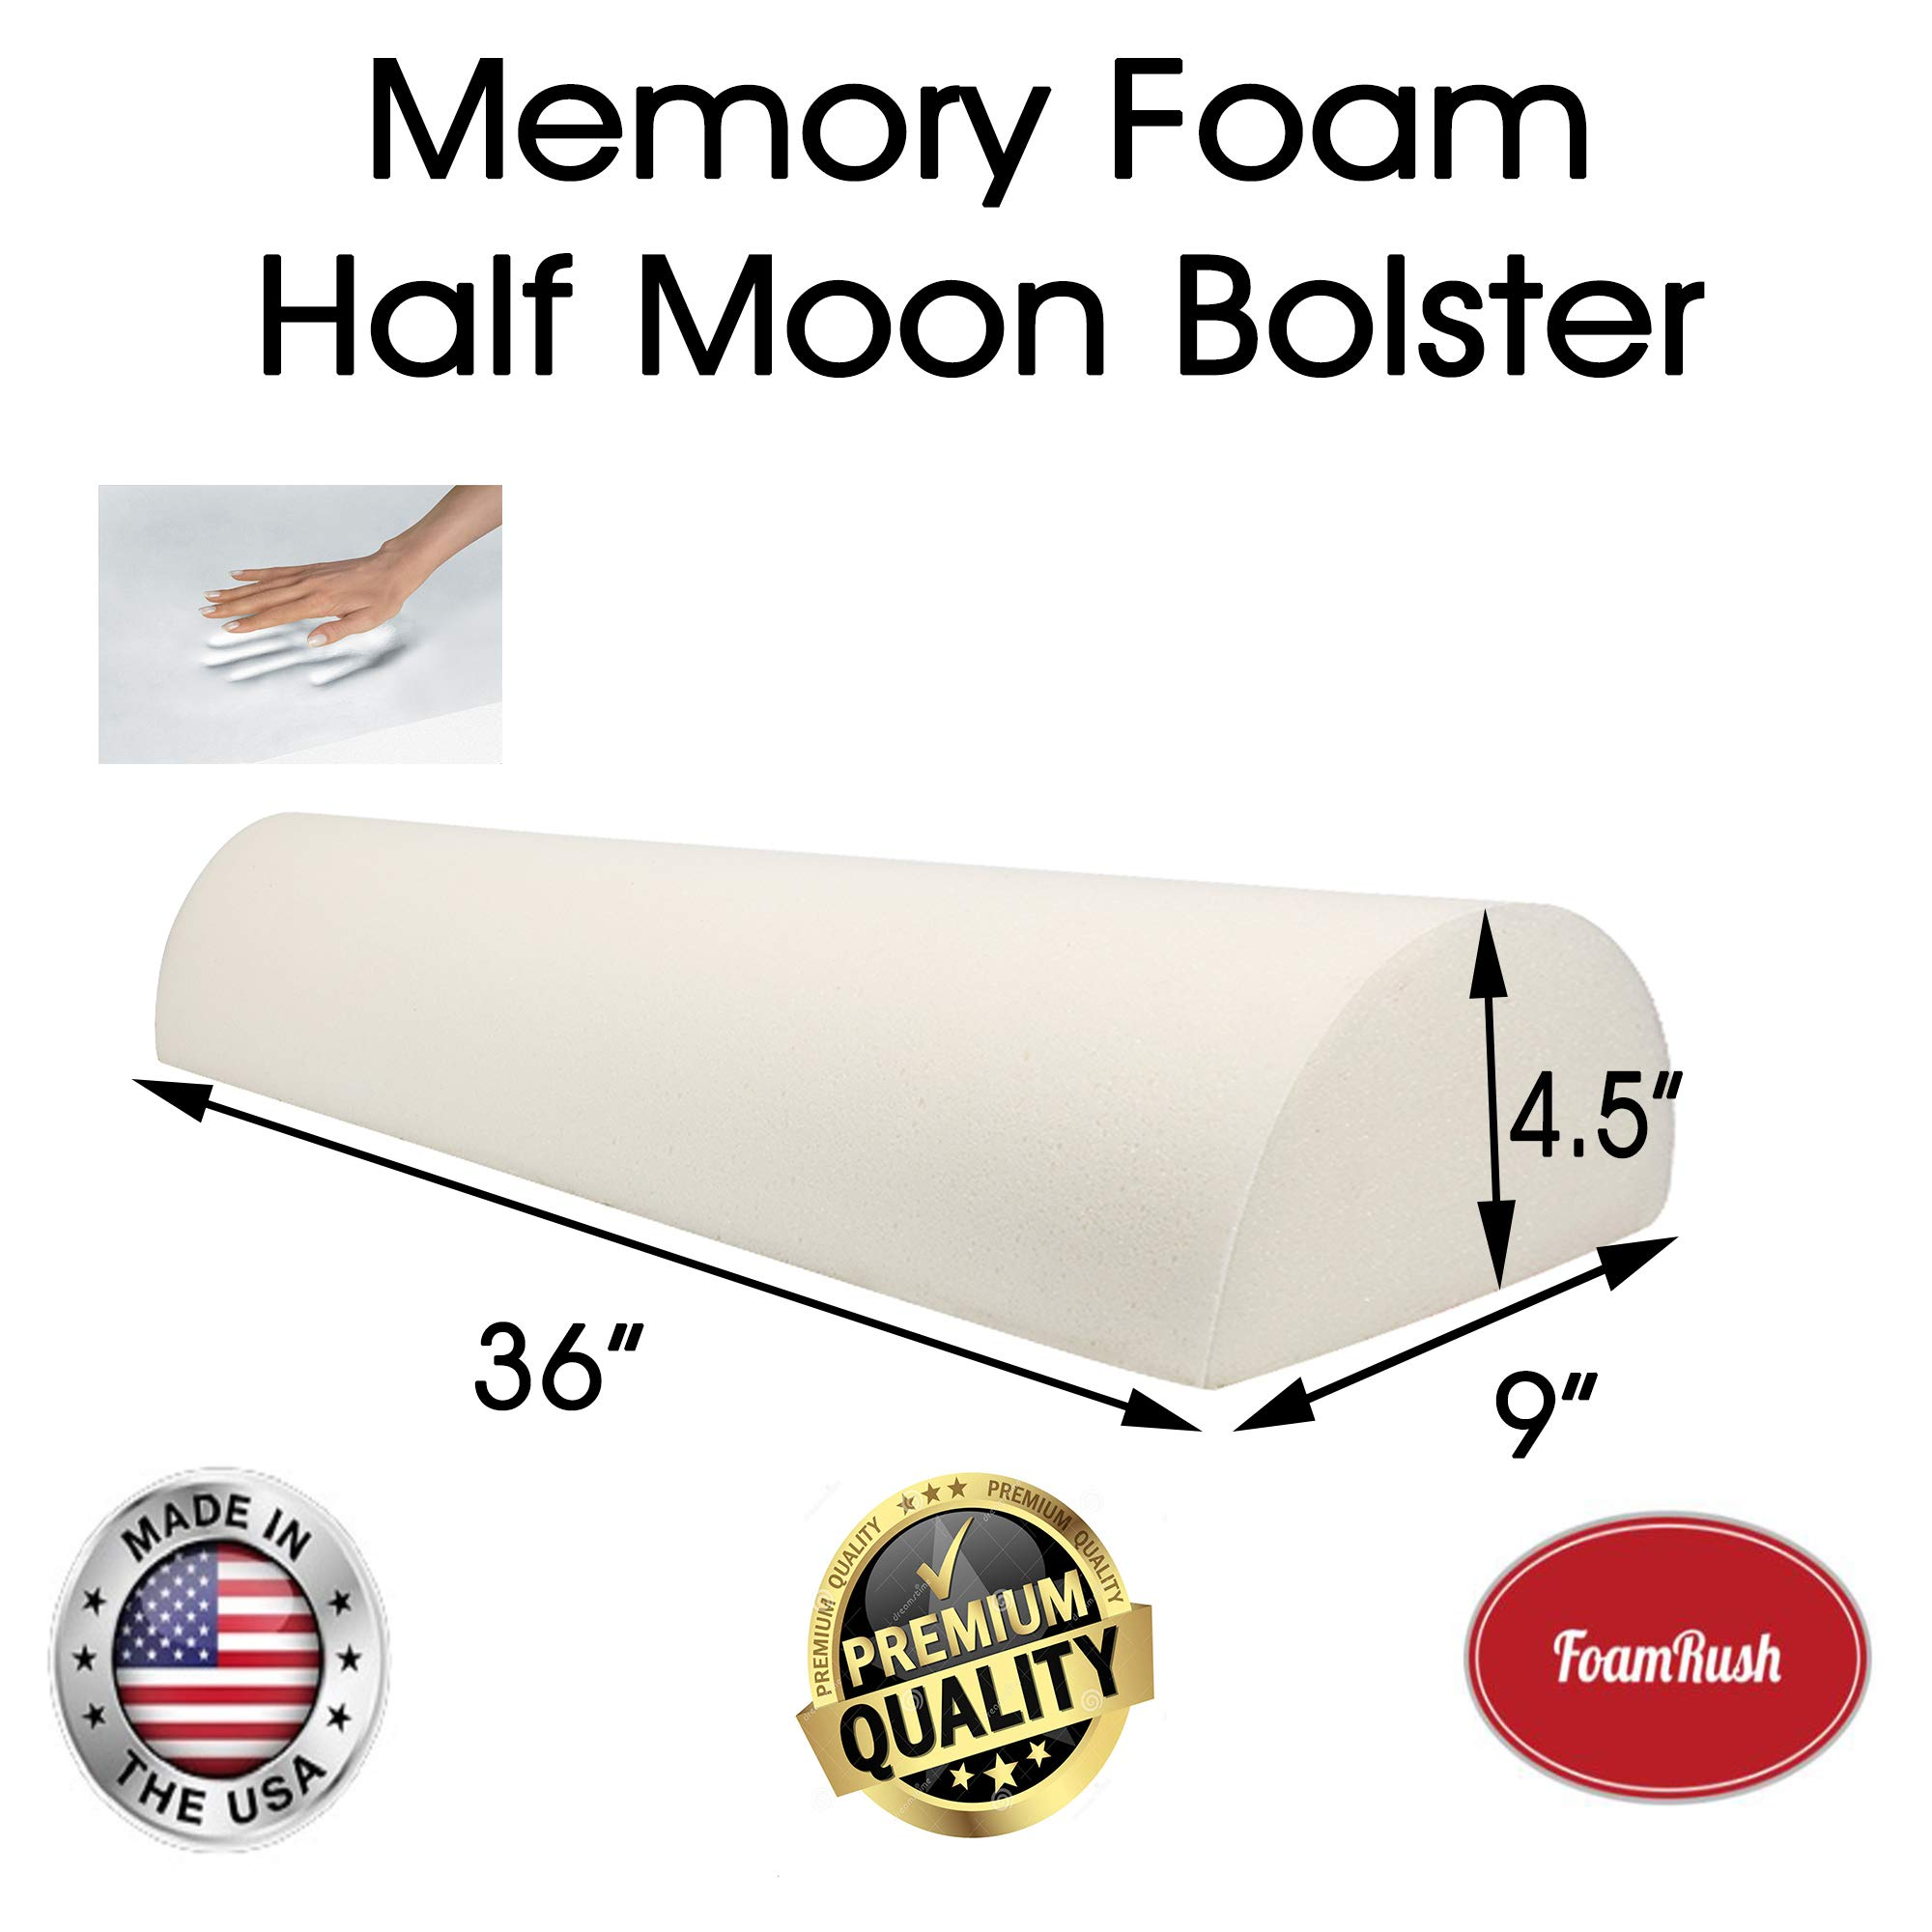 FoamRush 4.5'' H x 9'' D x36'' L Premium Quality Memory Foam Half Moon, Semi-Roll Bolster Cushion Replacement (Pressure Relief for Side, Back, Stomach Sleepers to Reduce Joint Stress) Made in USA by FoamRush